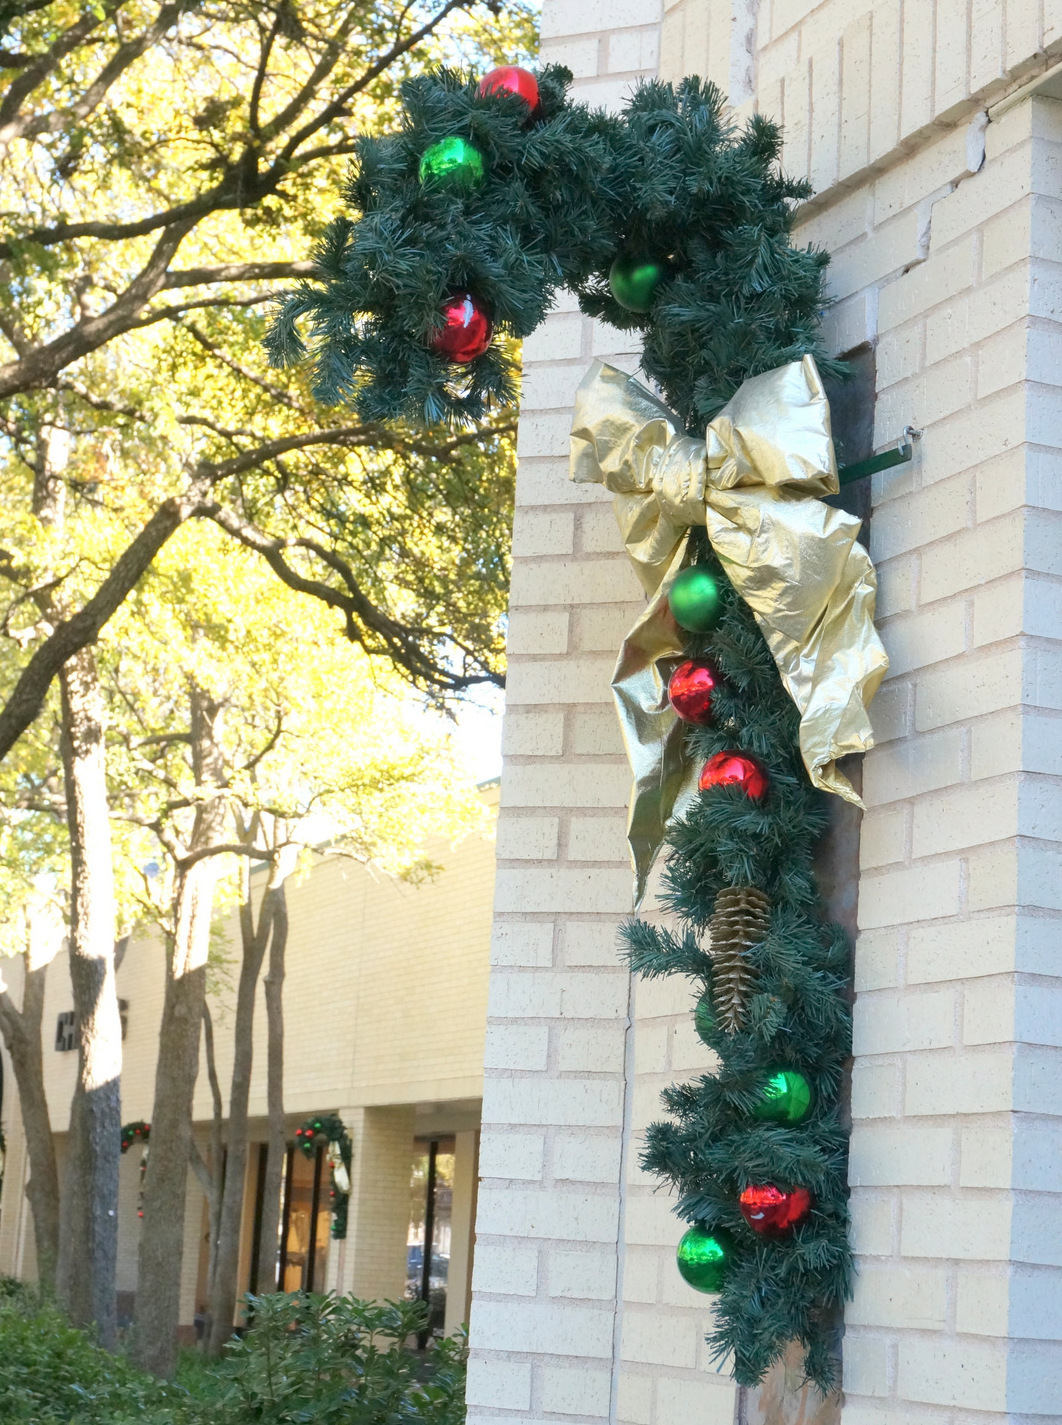 Holiday decorations at The Arboretum in Austin, Texas